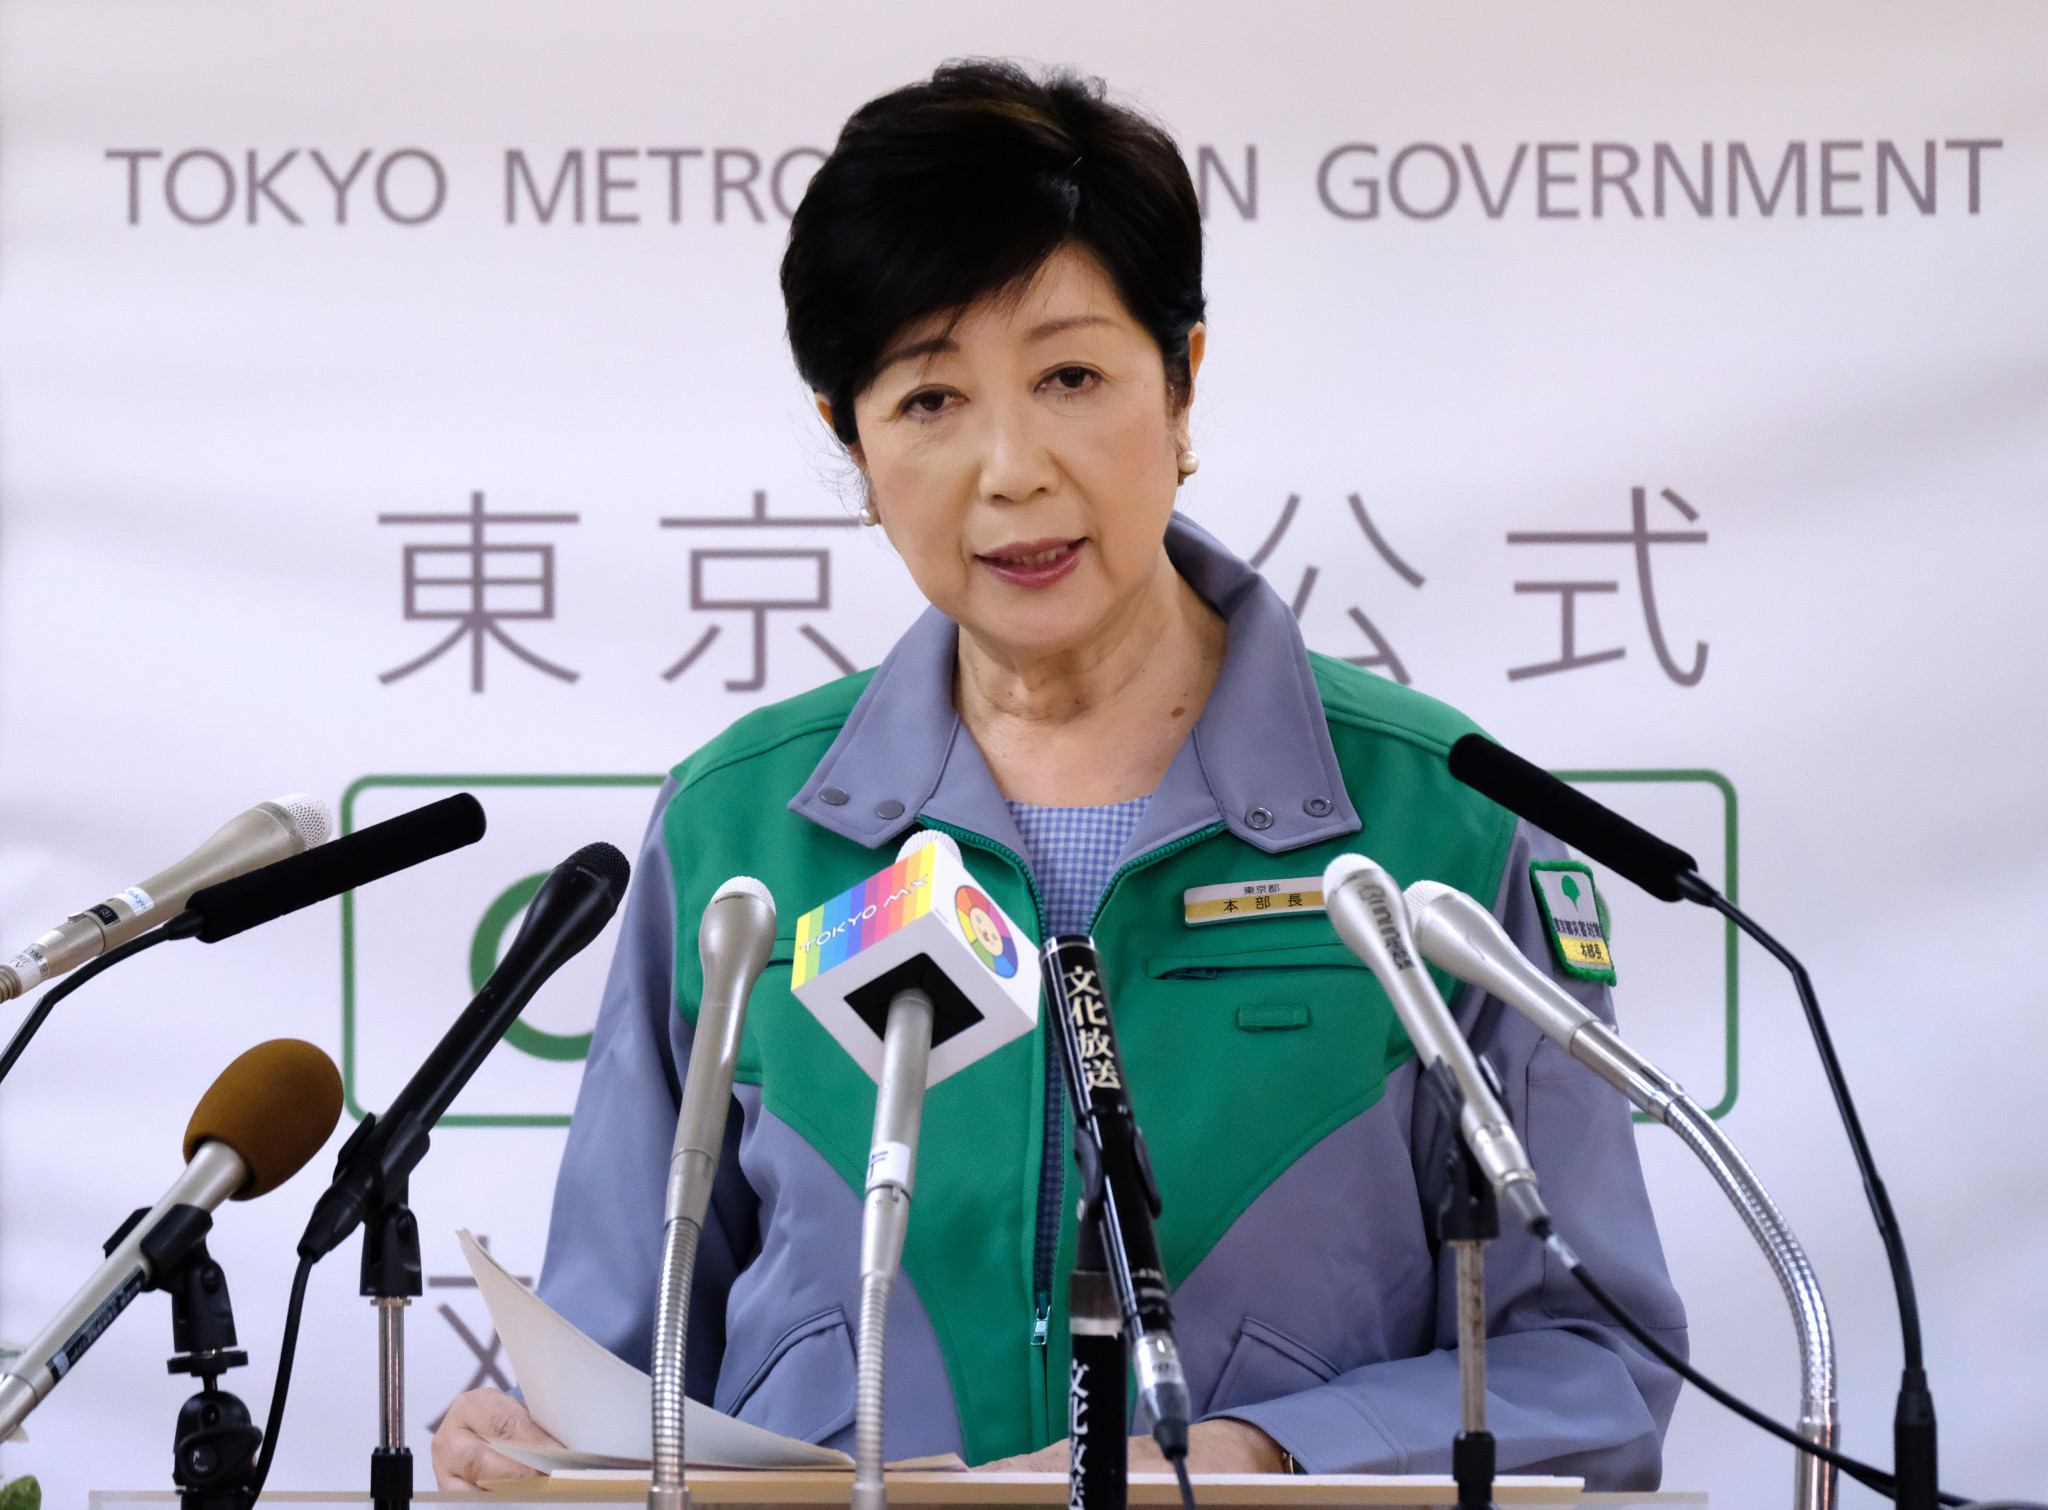 Tokyo Governor claims coronavirus situation improving as Games preparations continue